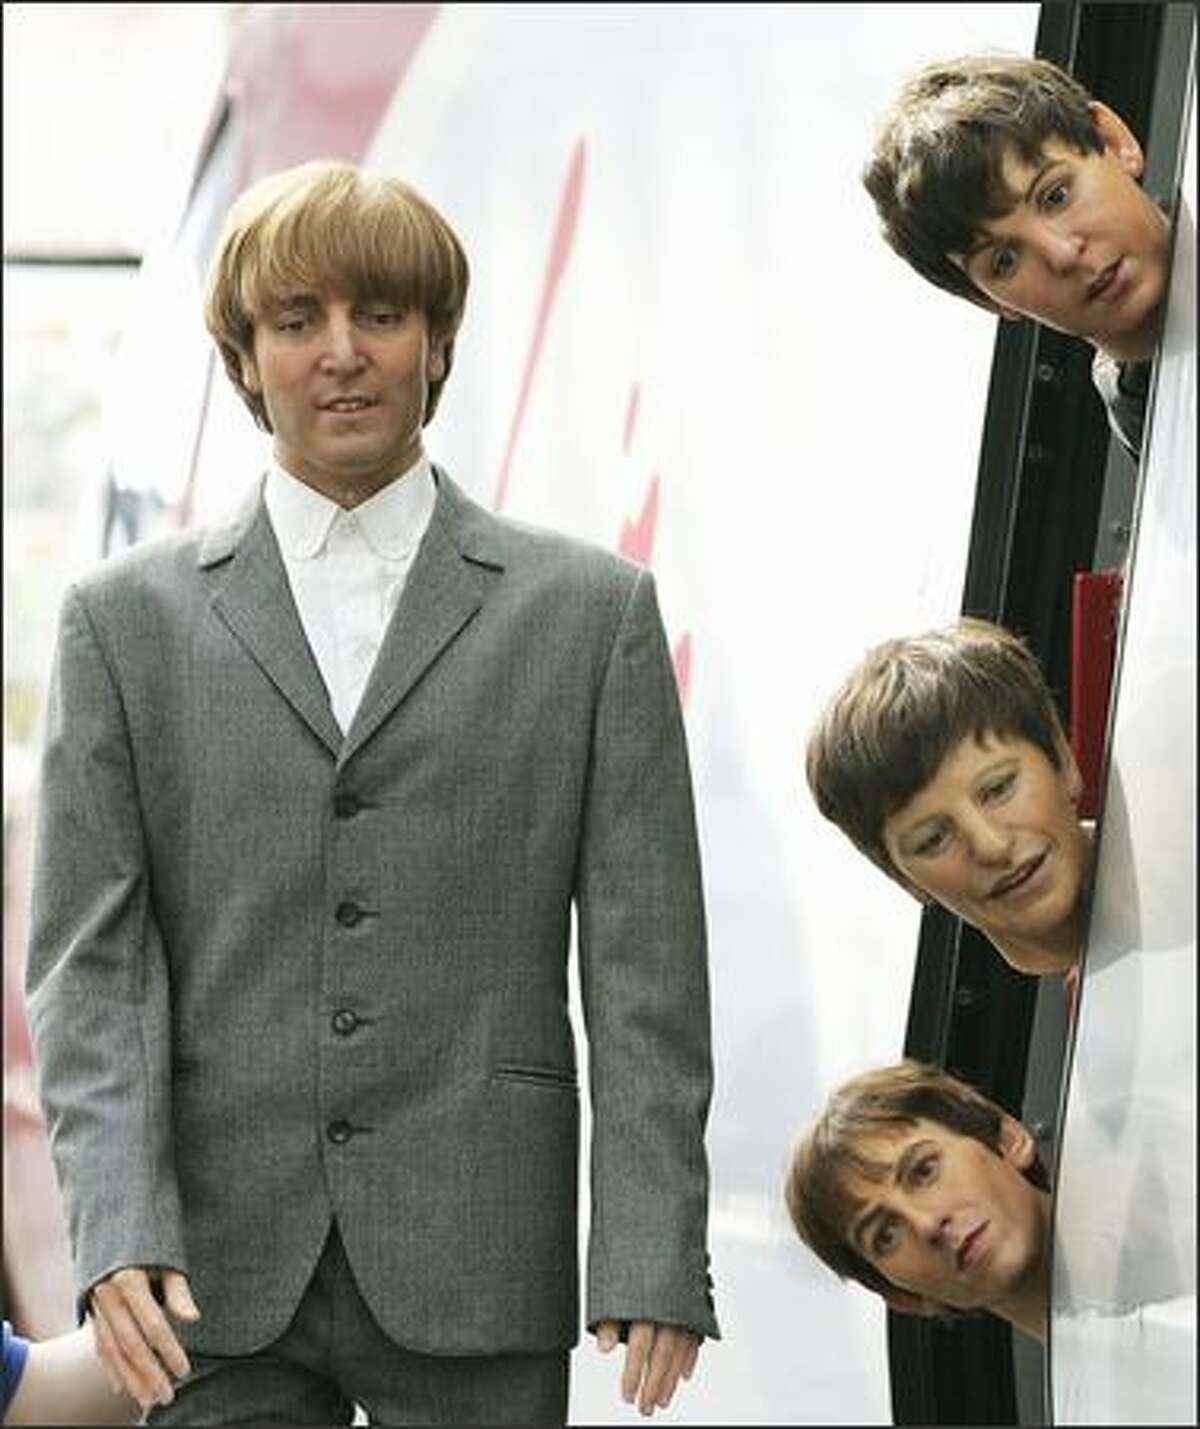 It's a long and winding road to becoming a creepy waxwork. The Beatles -- John Lennon, left, and Paul McCartney, top, Ringo Starr and George Harrison, being held from the door of a train, are heading for the Beatles Story Museum in Liverpool, England. They previously had been on display at Madame Tussauds in London.